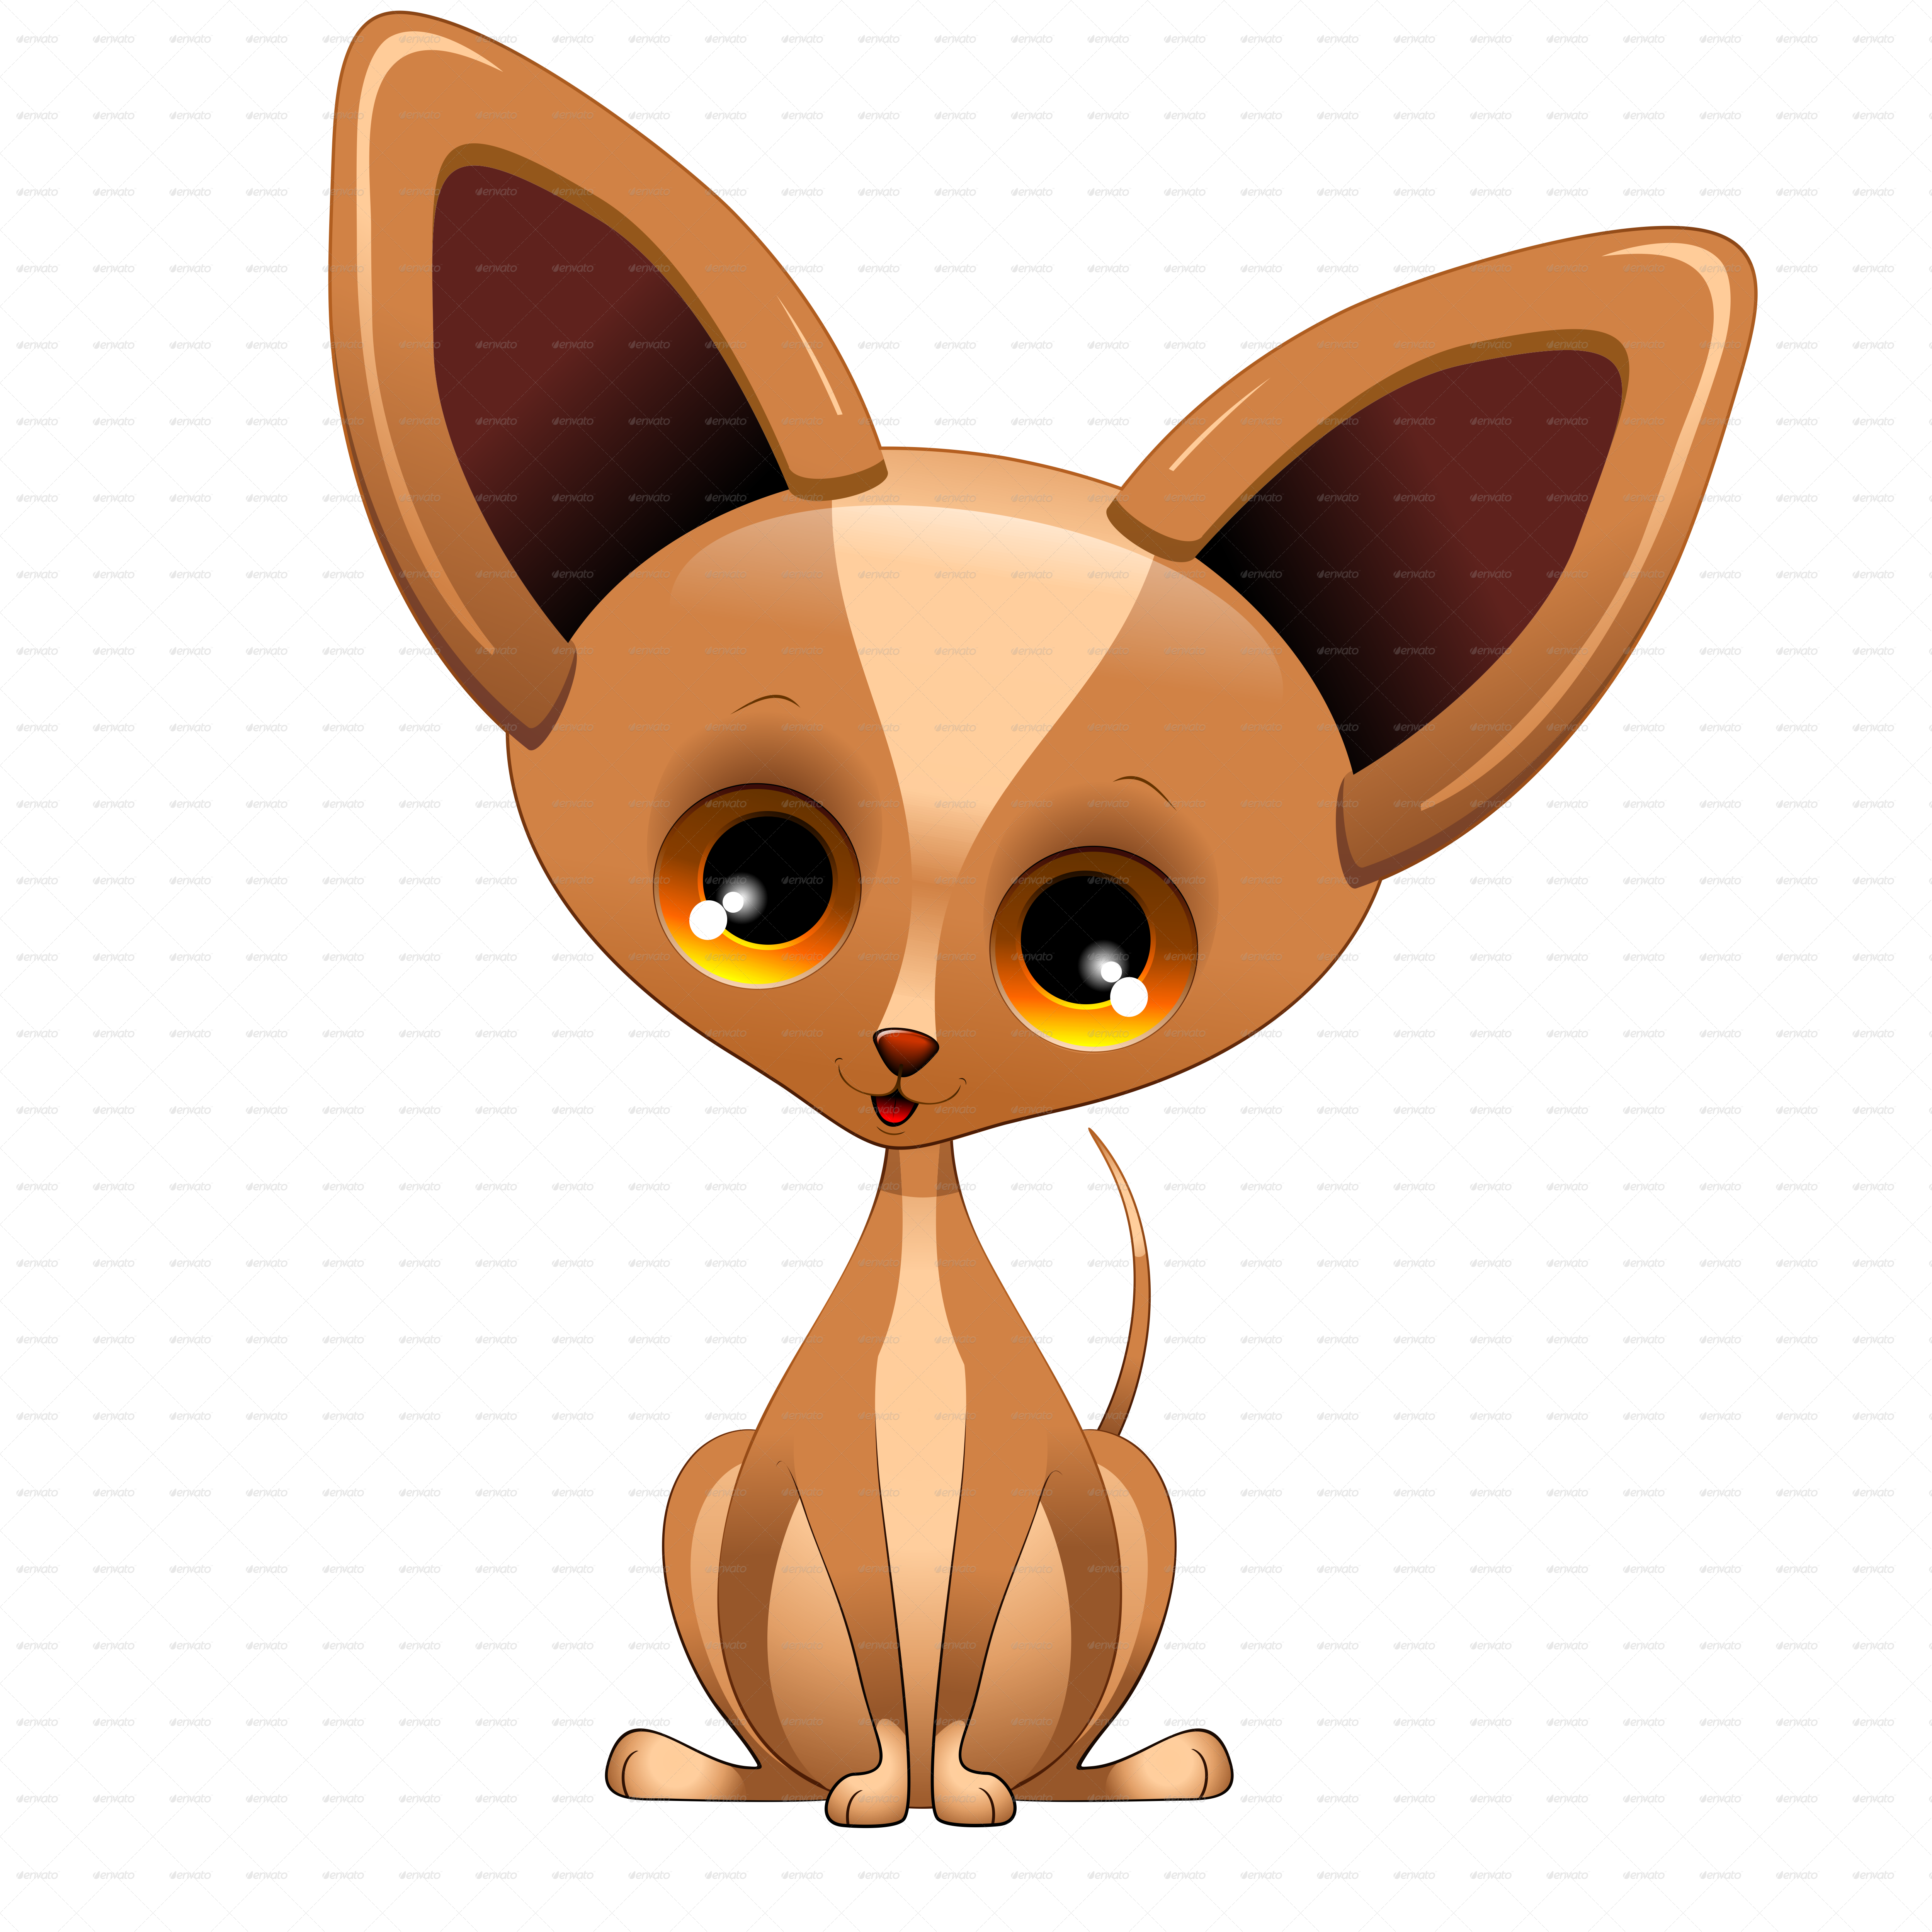 jpg freeuse download Chihuahua clipart chihuahua puppy. Dog cartoon from mexico.